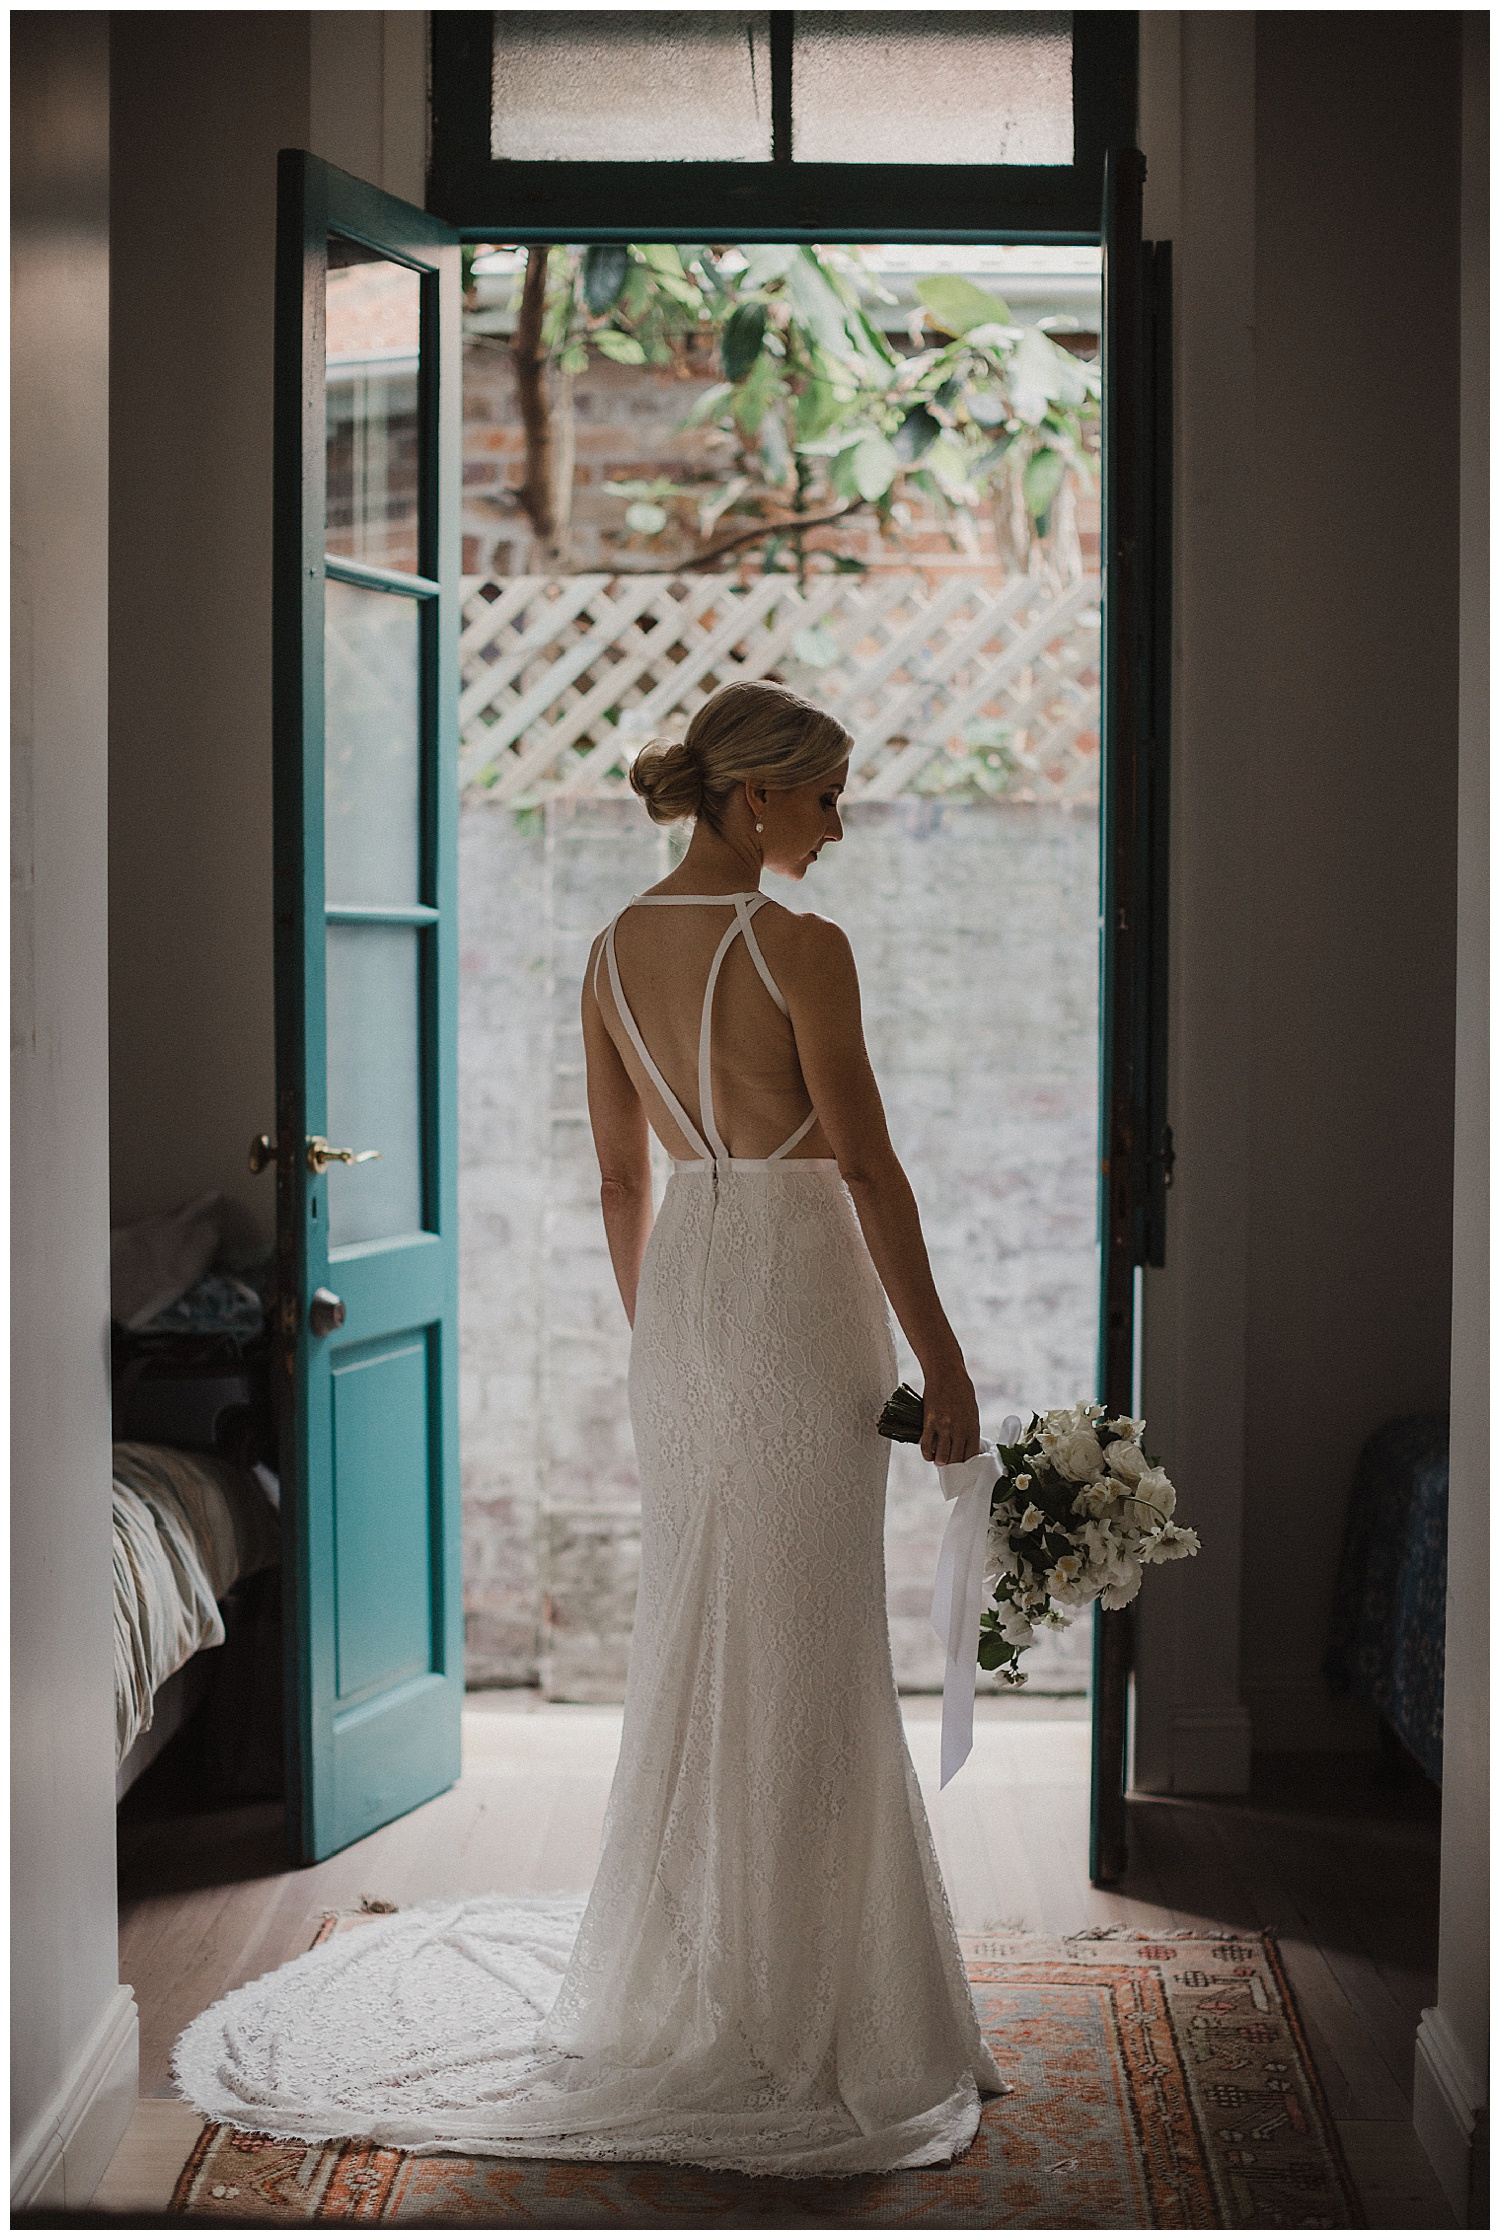 Sydney Bride in Karen Willis Holmes, Poho Flowers, at Bondi Beach Prep